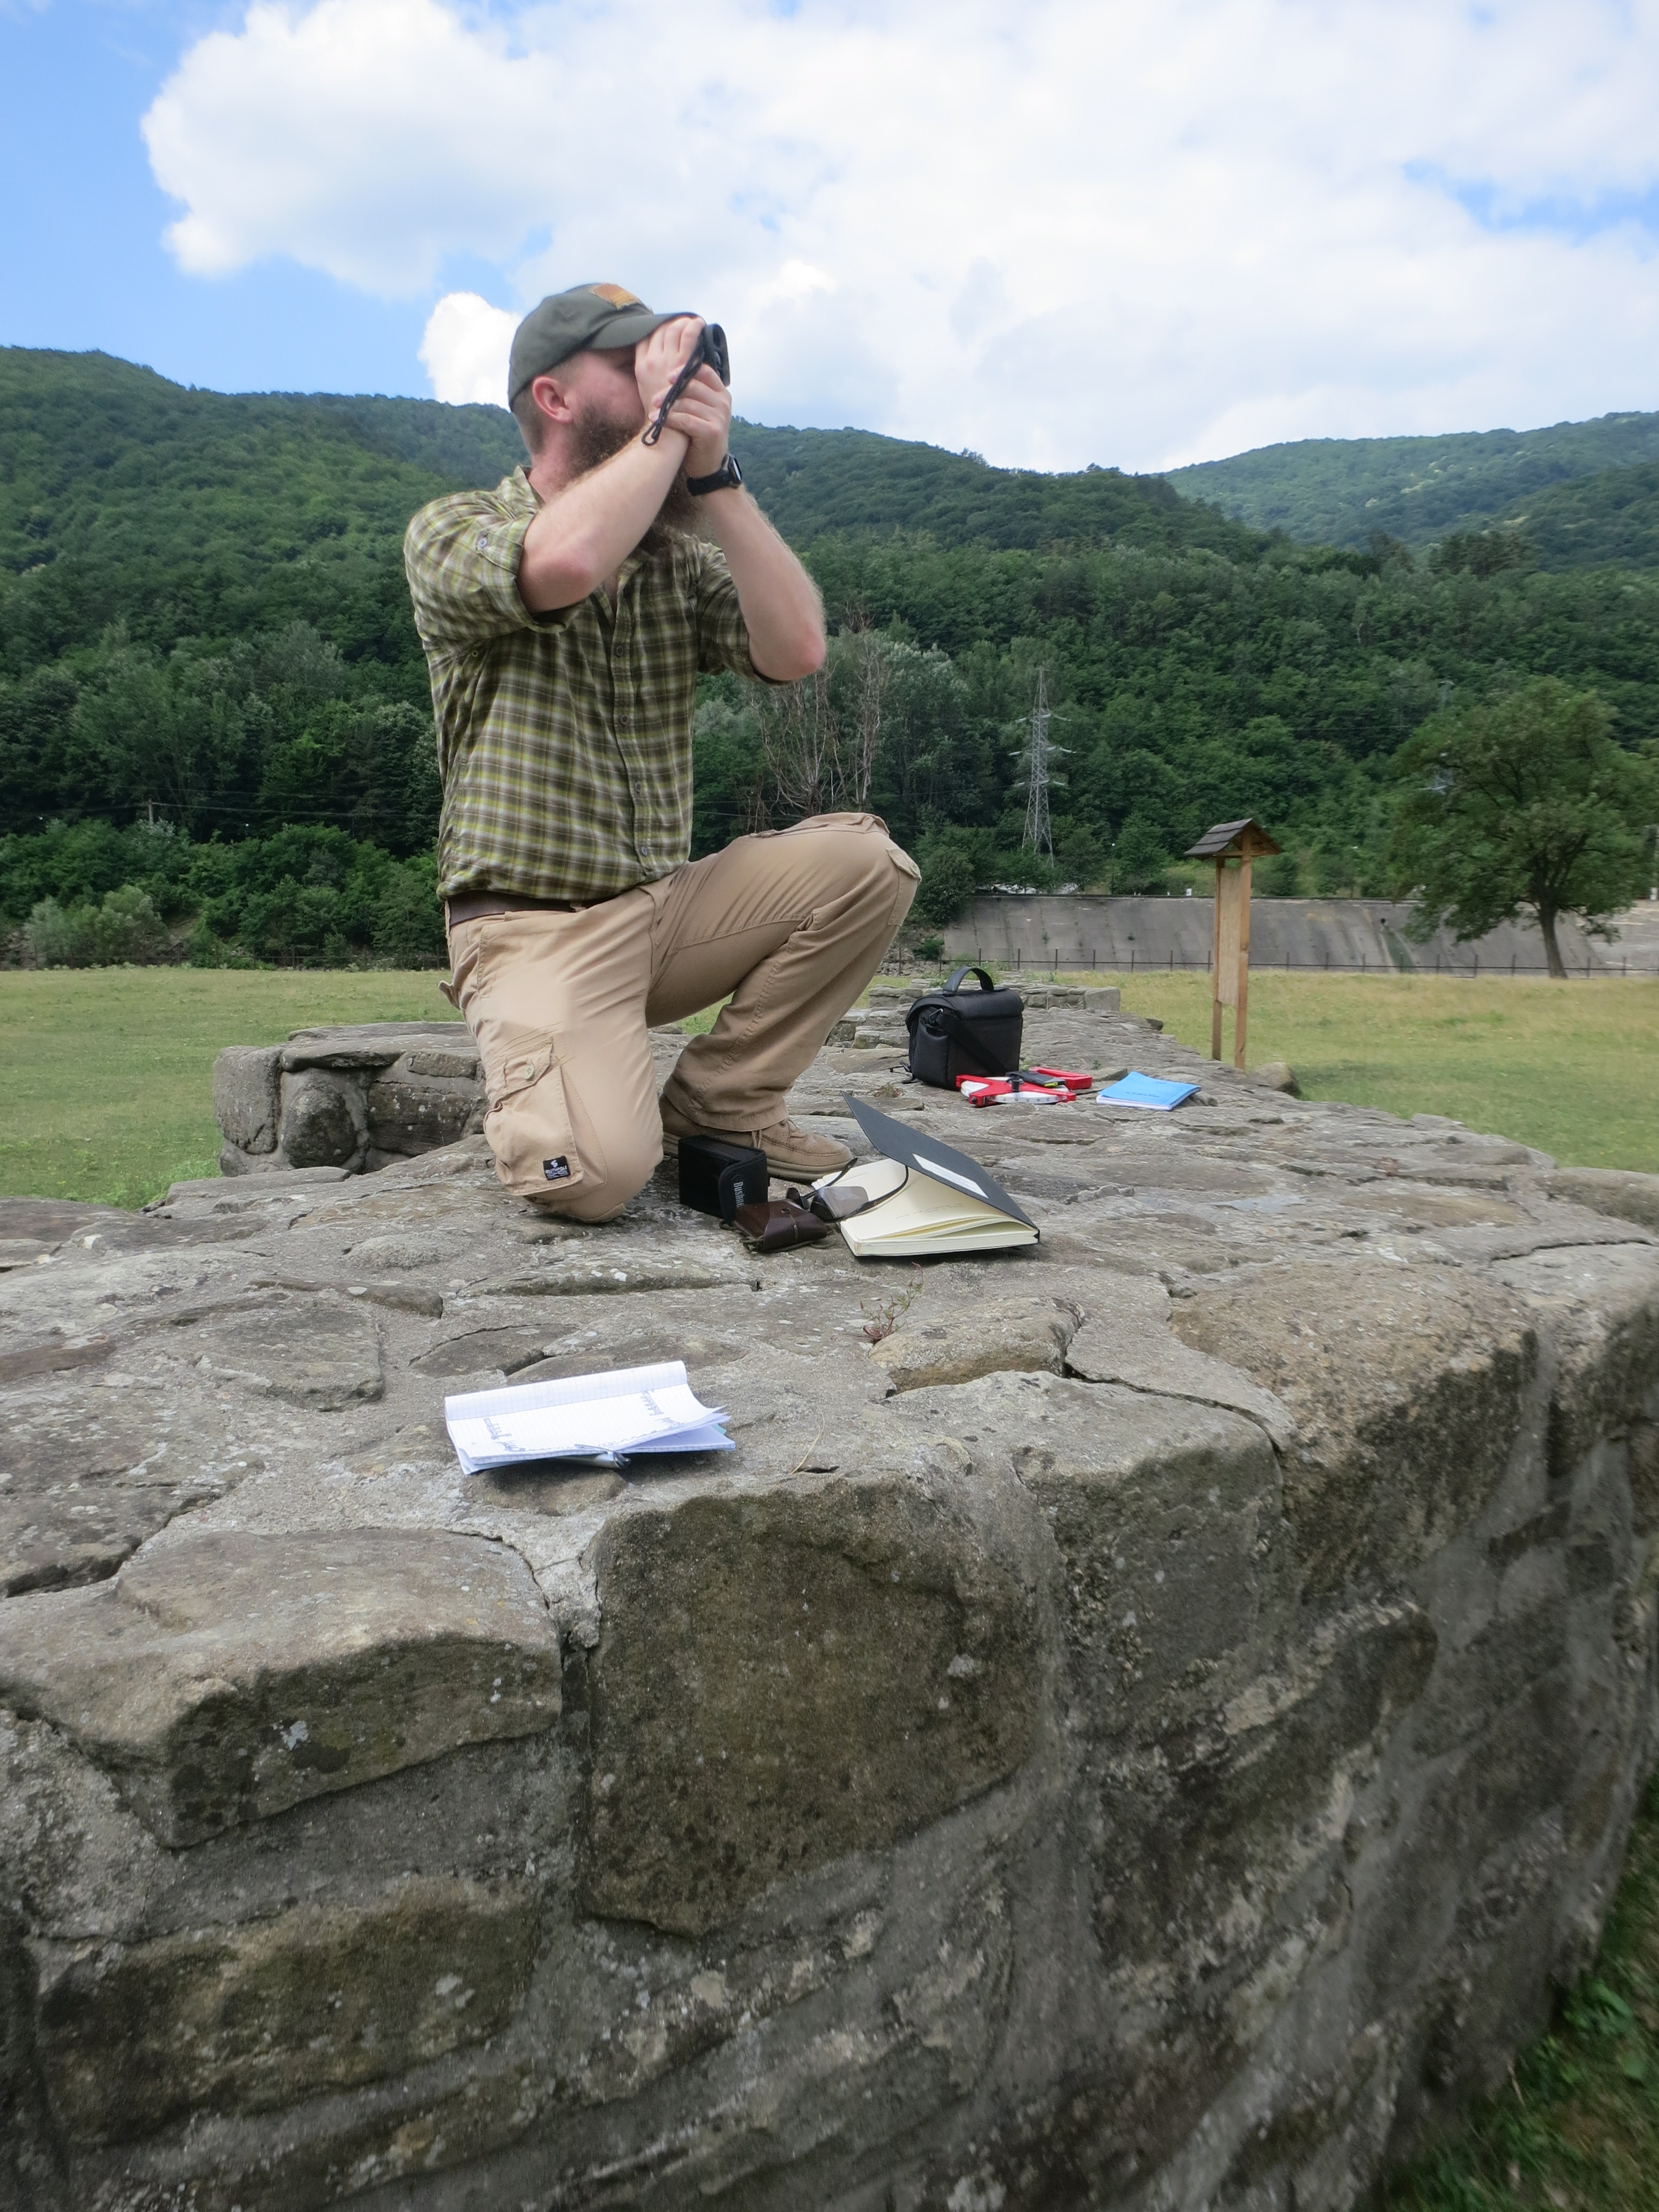 Guest Post: Archaeology meets Technology in Transylvania